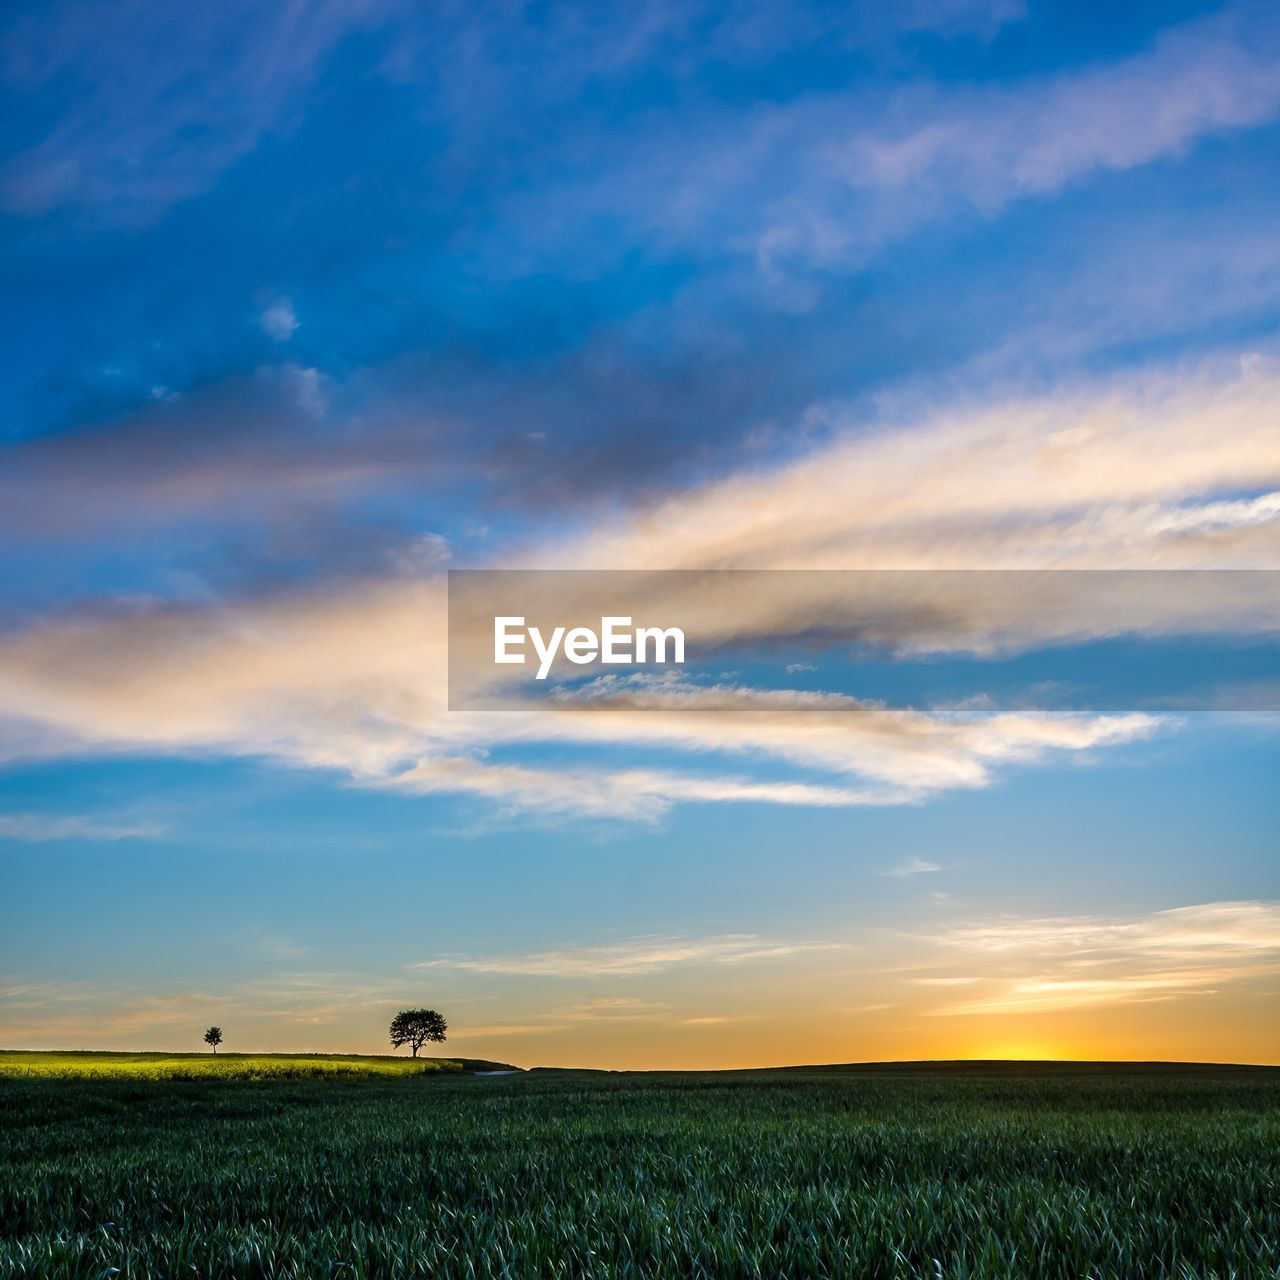 sky, cloud - sky, field, land, beauty in nature, landscape, environment, scenics - nature, tranquil scene, tranquility, plant, nature, agriculture, rural scene, farm, growth, sunset, crop, no people, idyllic, outdoors